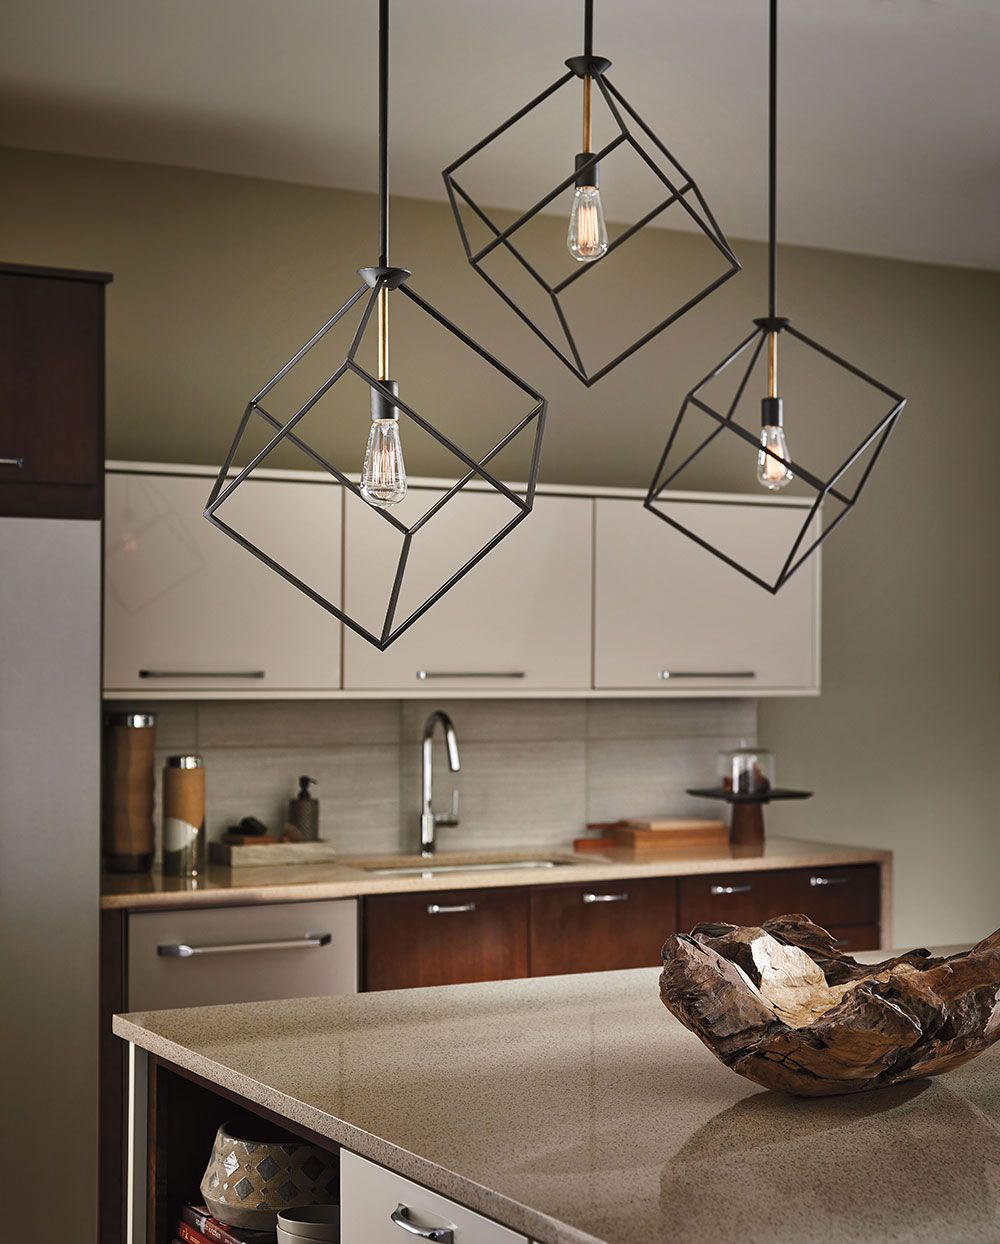 Cubed Kitchen Lighting Design See Two Options At Https - Kitchen lighting products